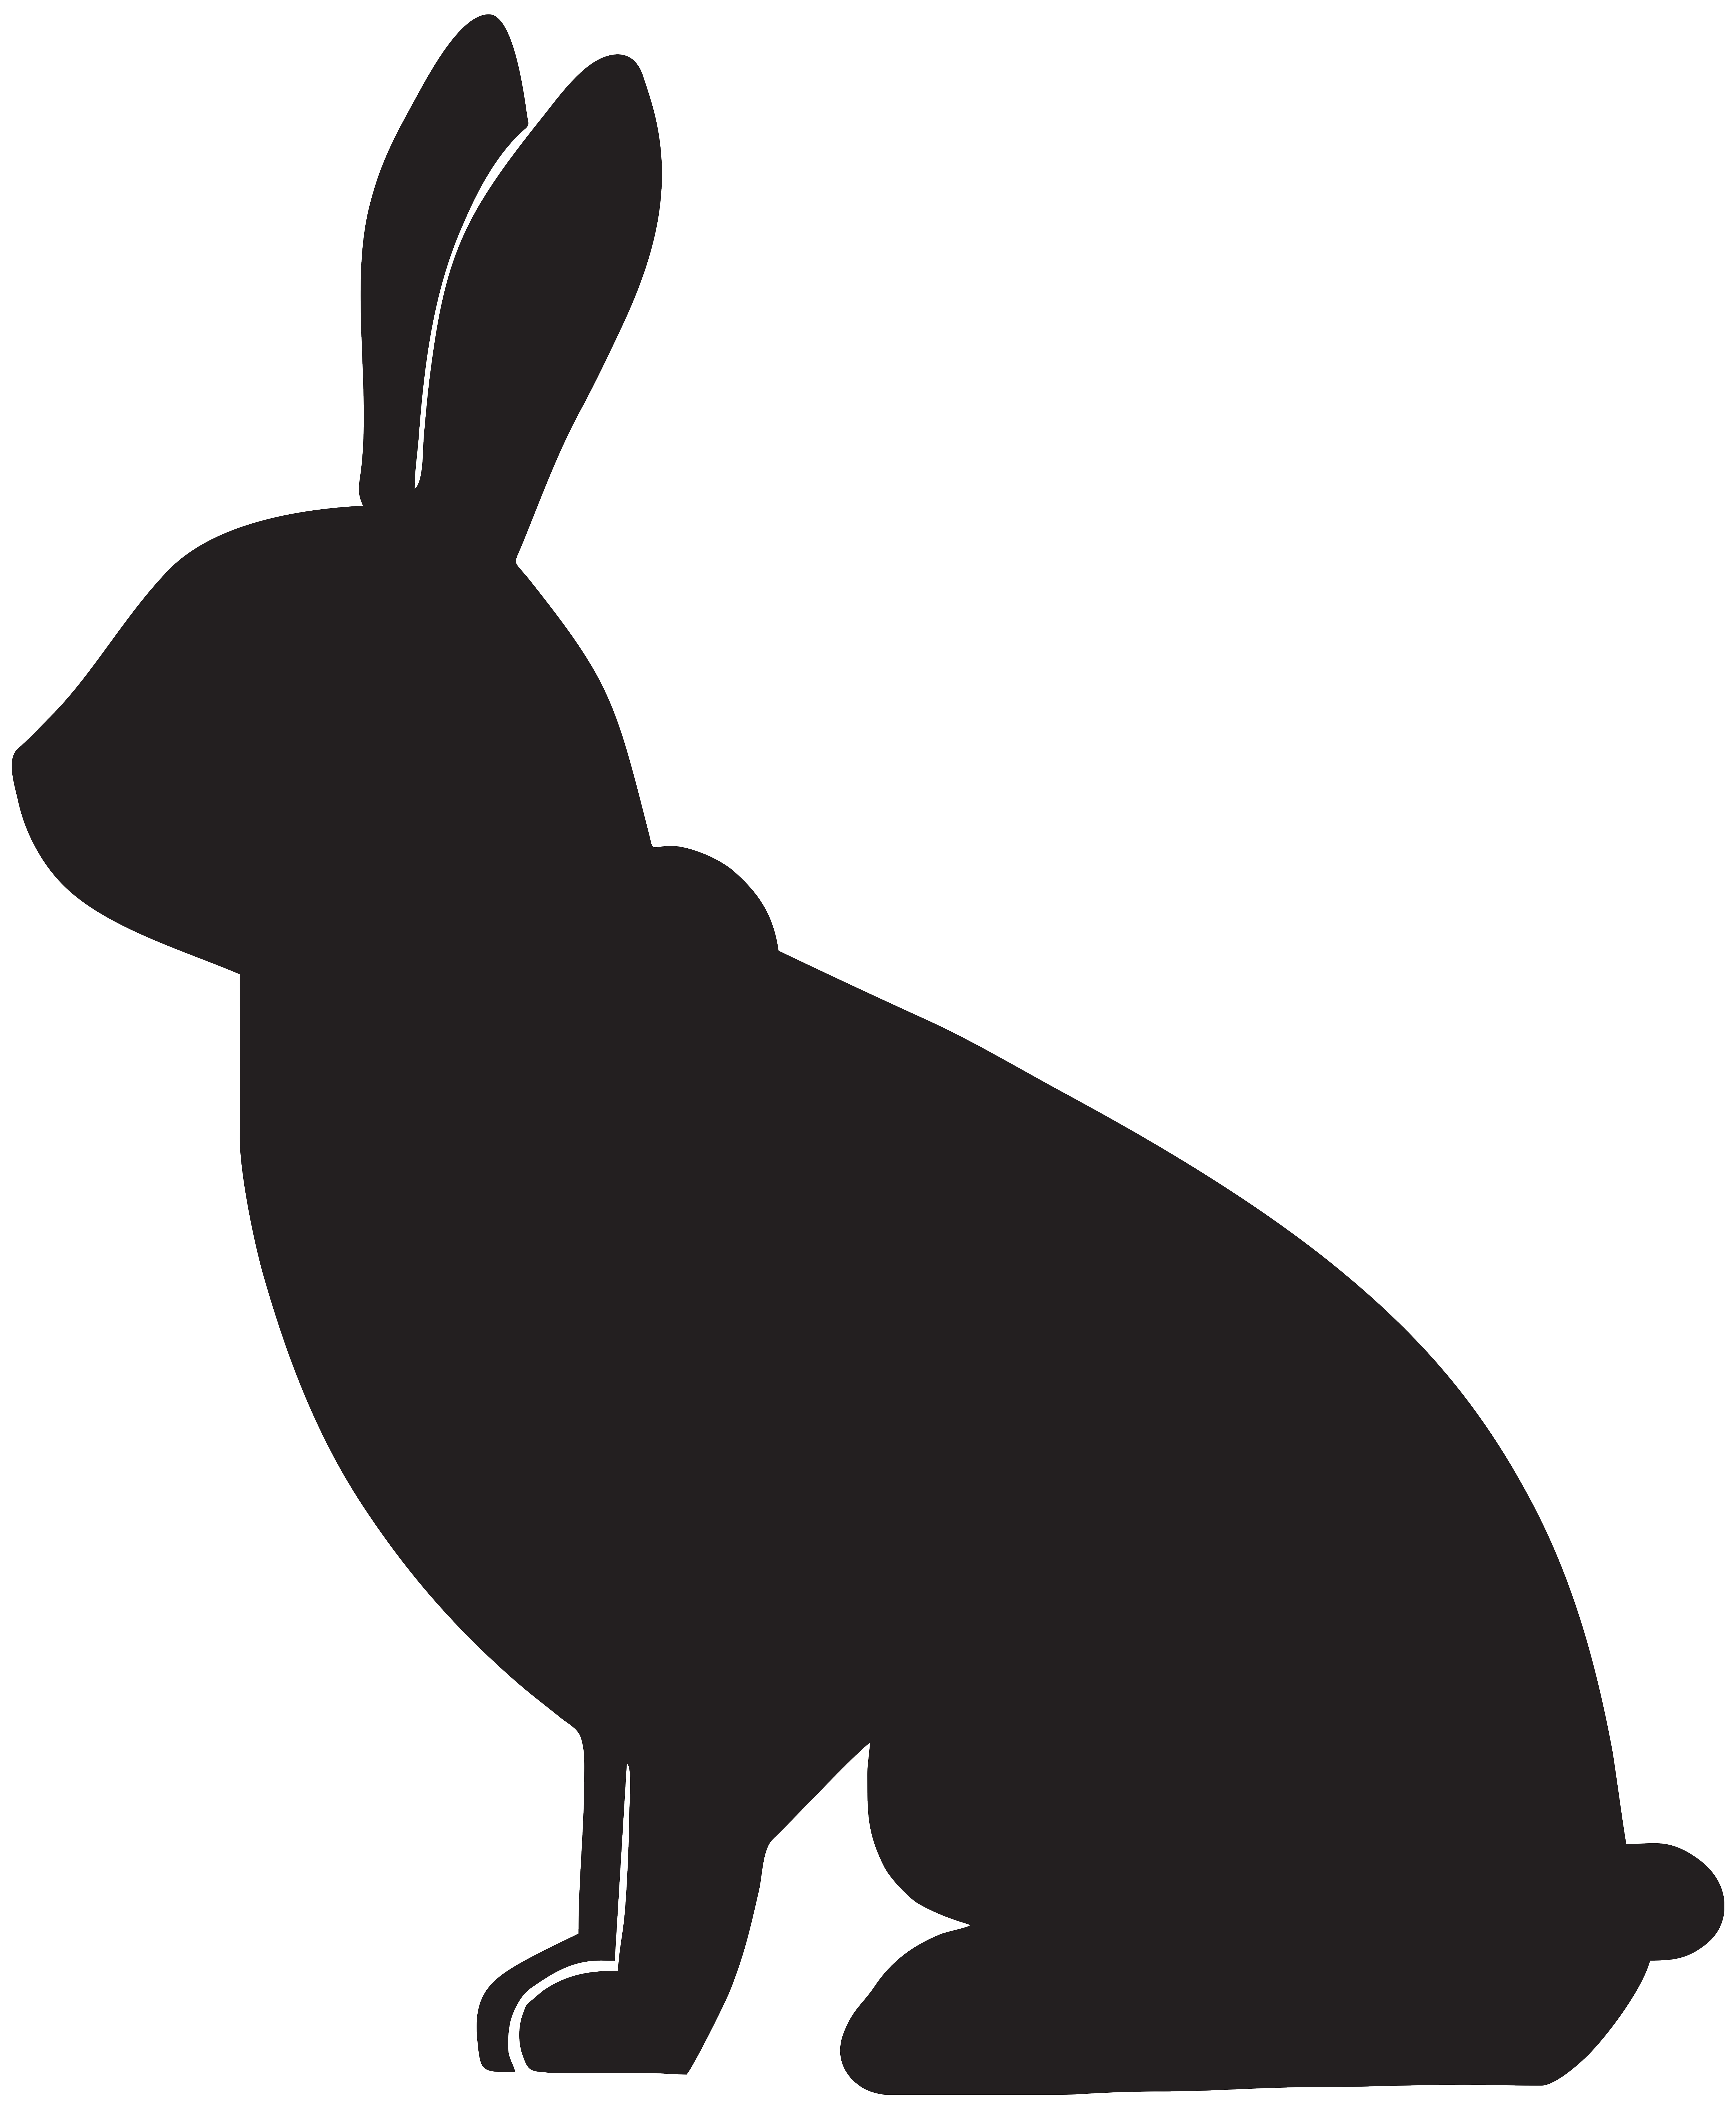 6586x8000 Rabbit Silhouette Png Clip Art Imageu200b Gallery Yopriceville